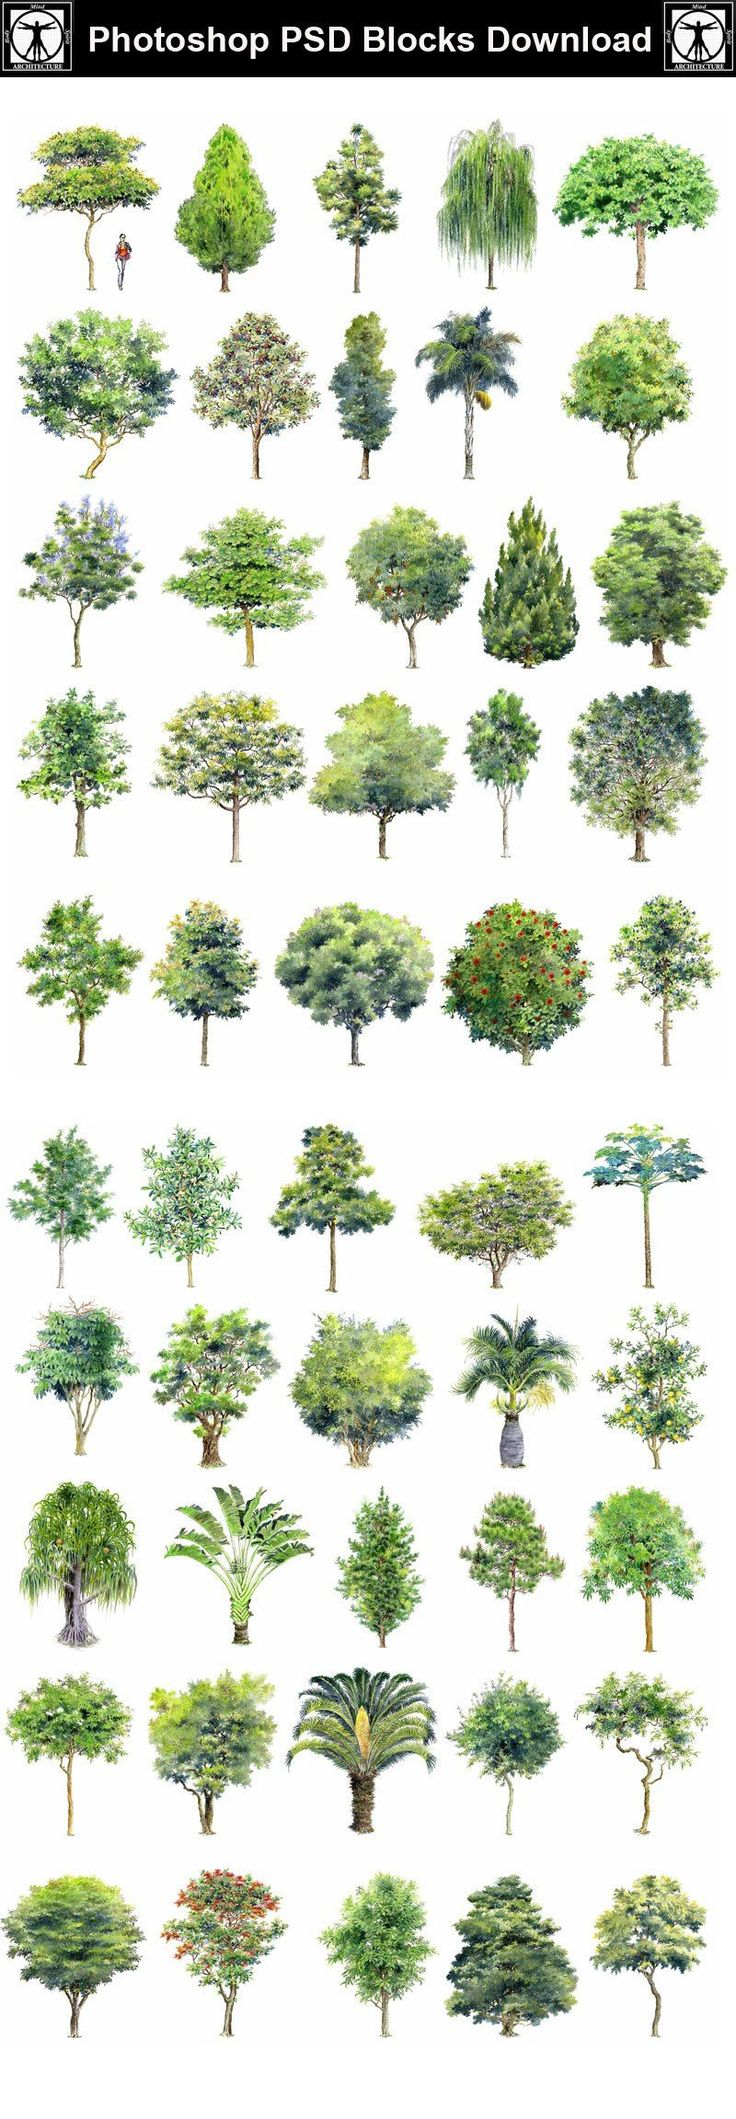 Hand-painted PSD Tree Blocks 2 | Free Cad Blocks & Drawings Download Center